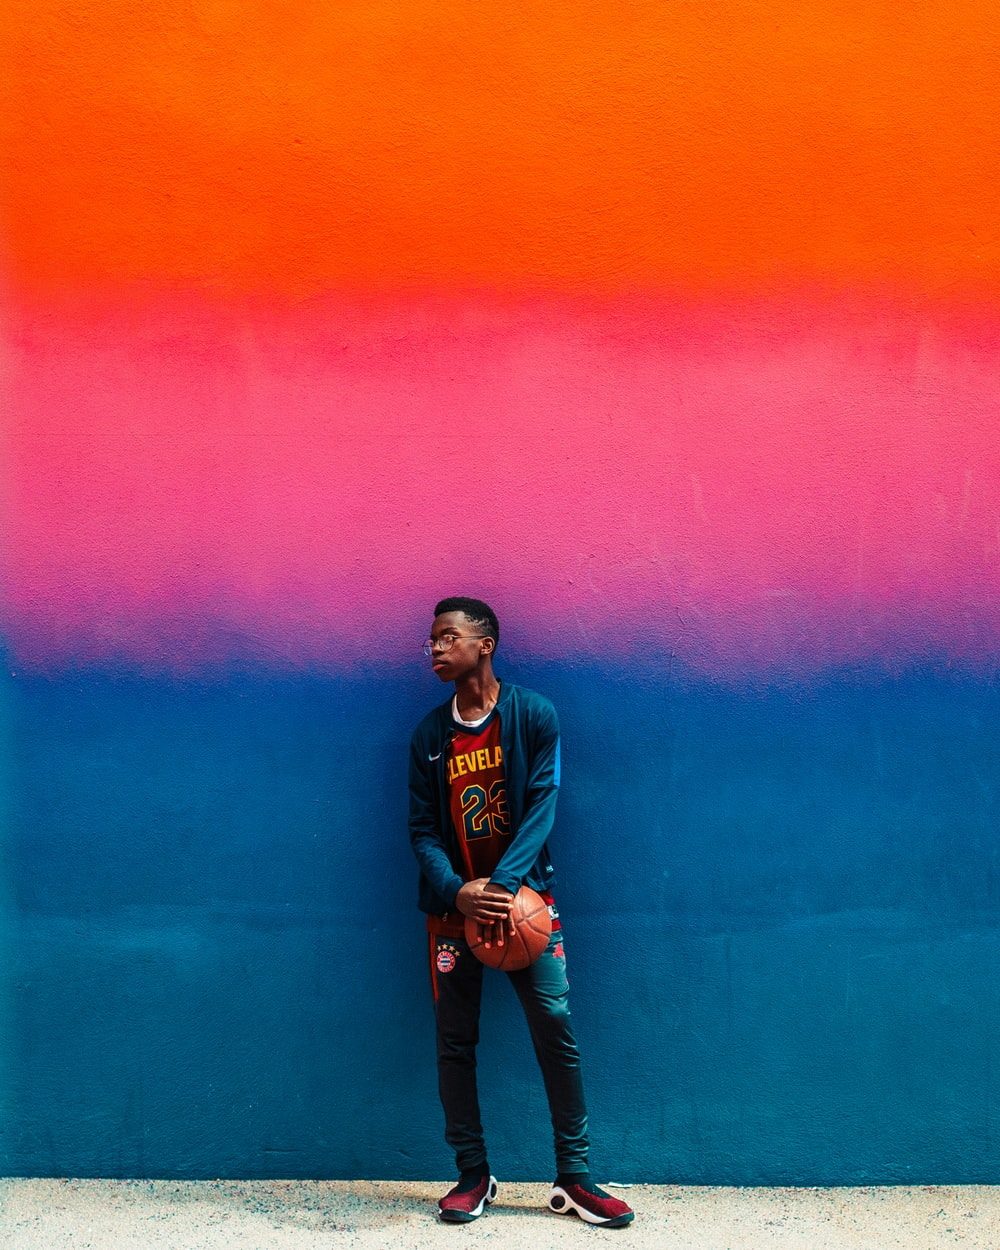 boy standing and holding basketball beside blue and pink painted wall